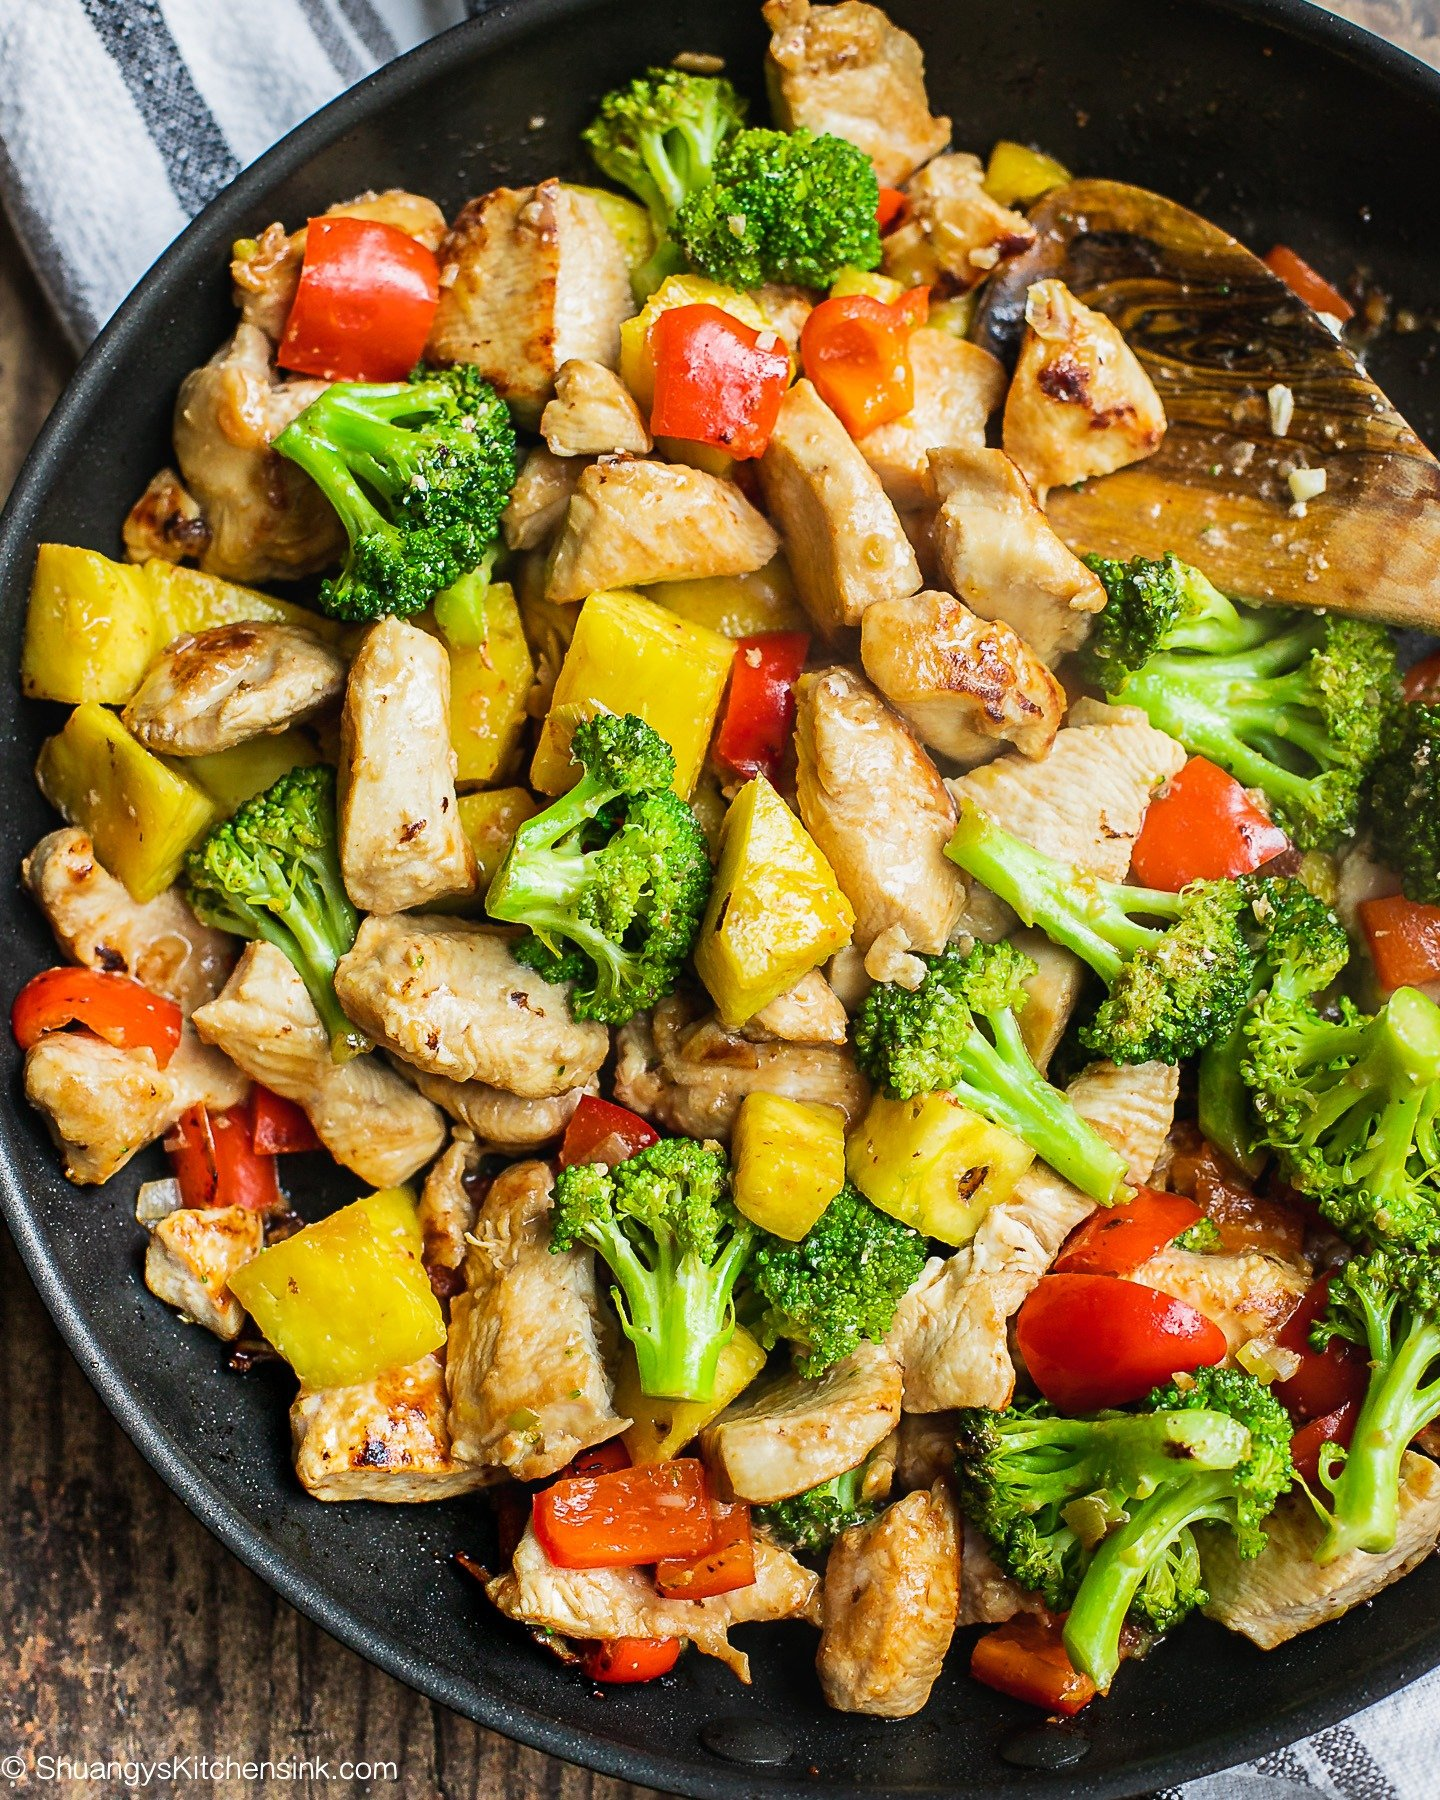 A pan full of pineapple, broccoli and chicken